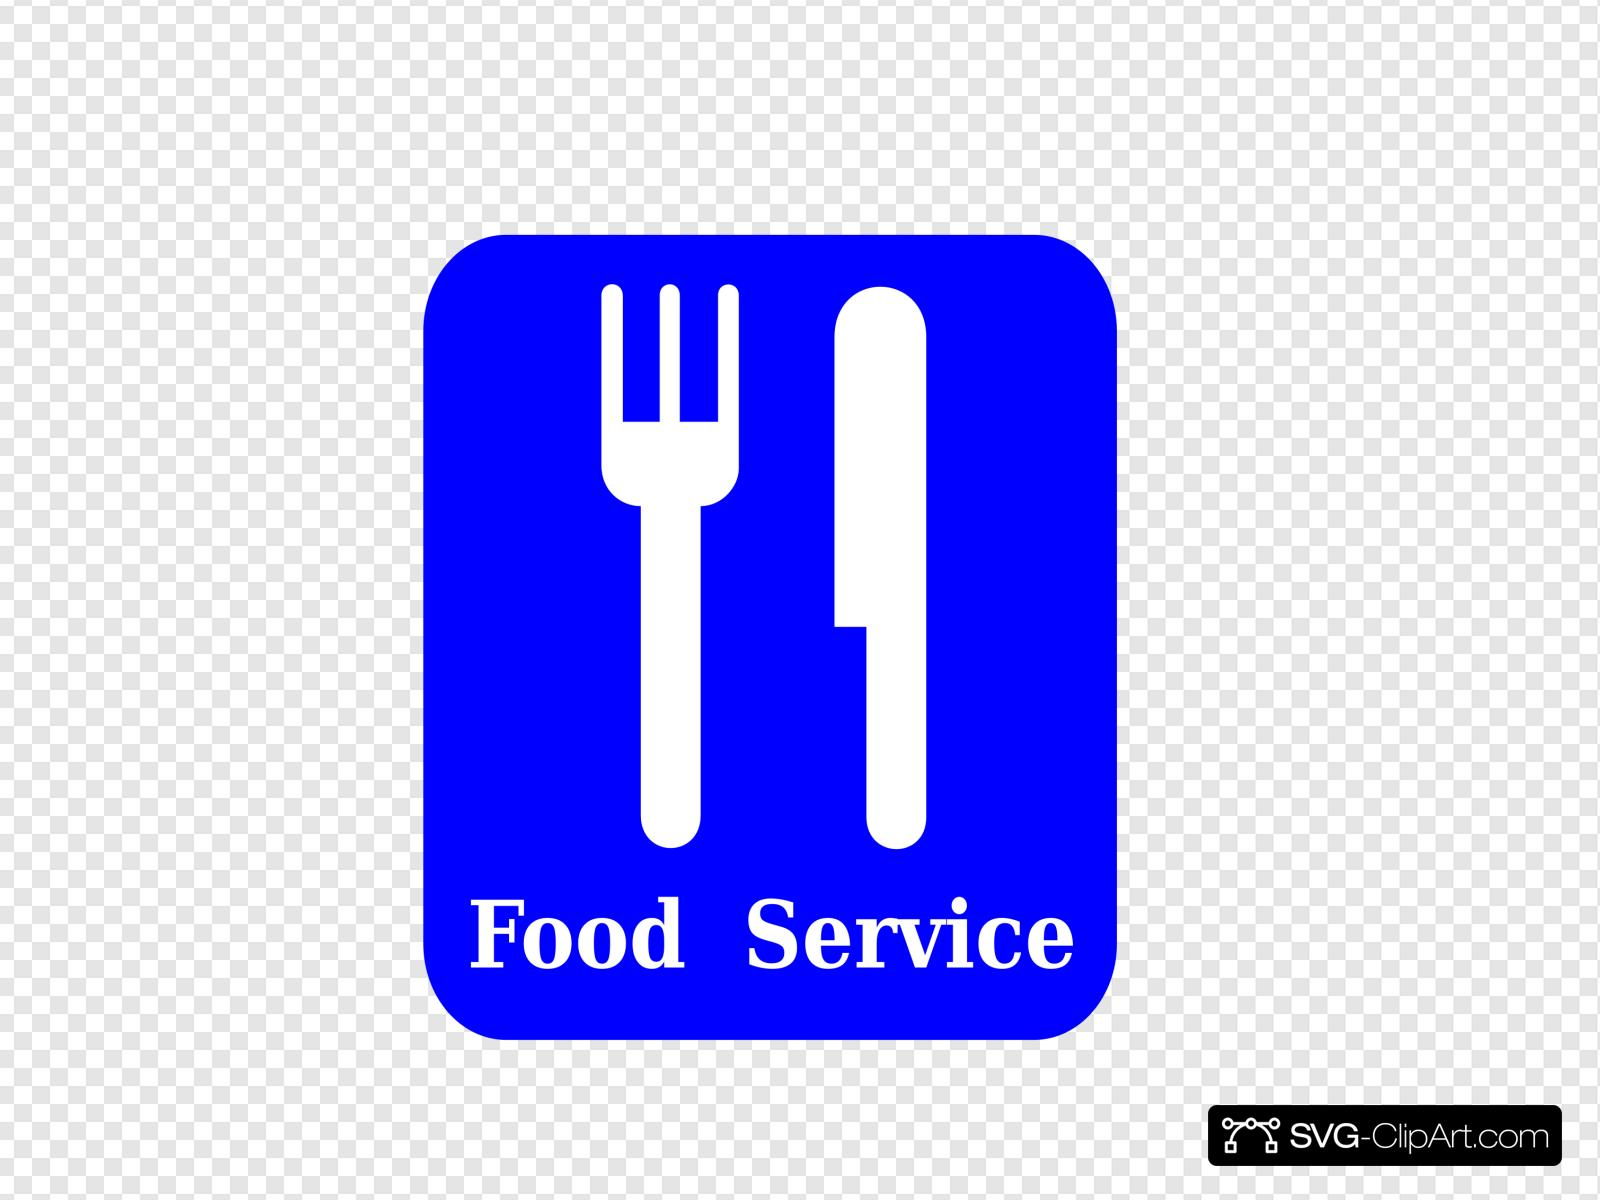 Food Service 5 Clip art, Icon and SVG.